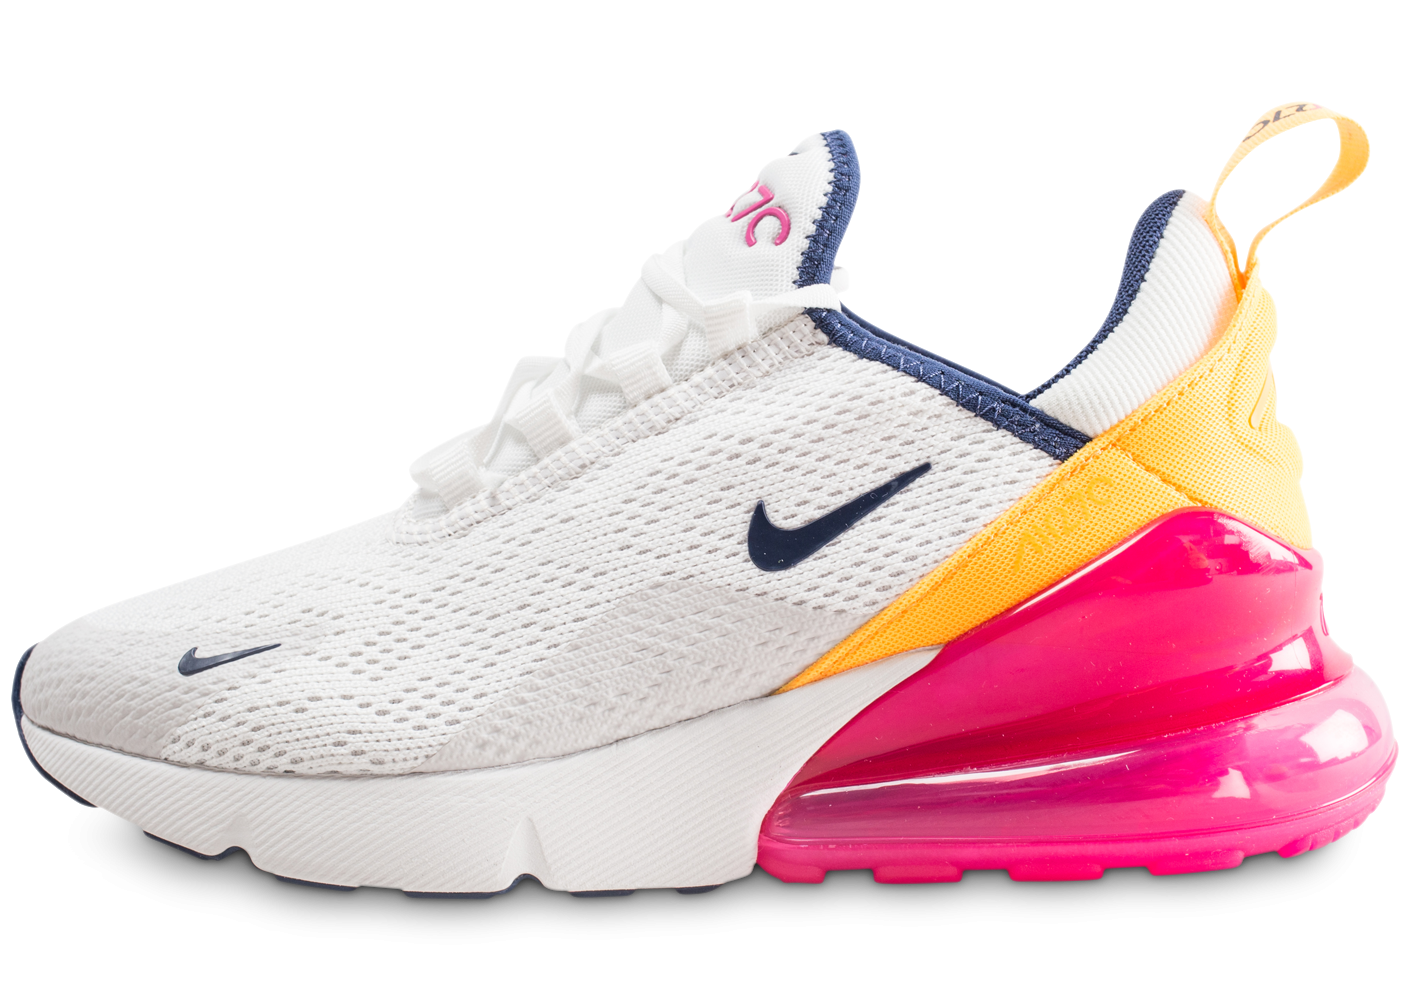 Nike Air Max 270 blanc fuchsia et orange femme